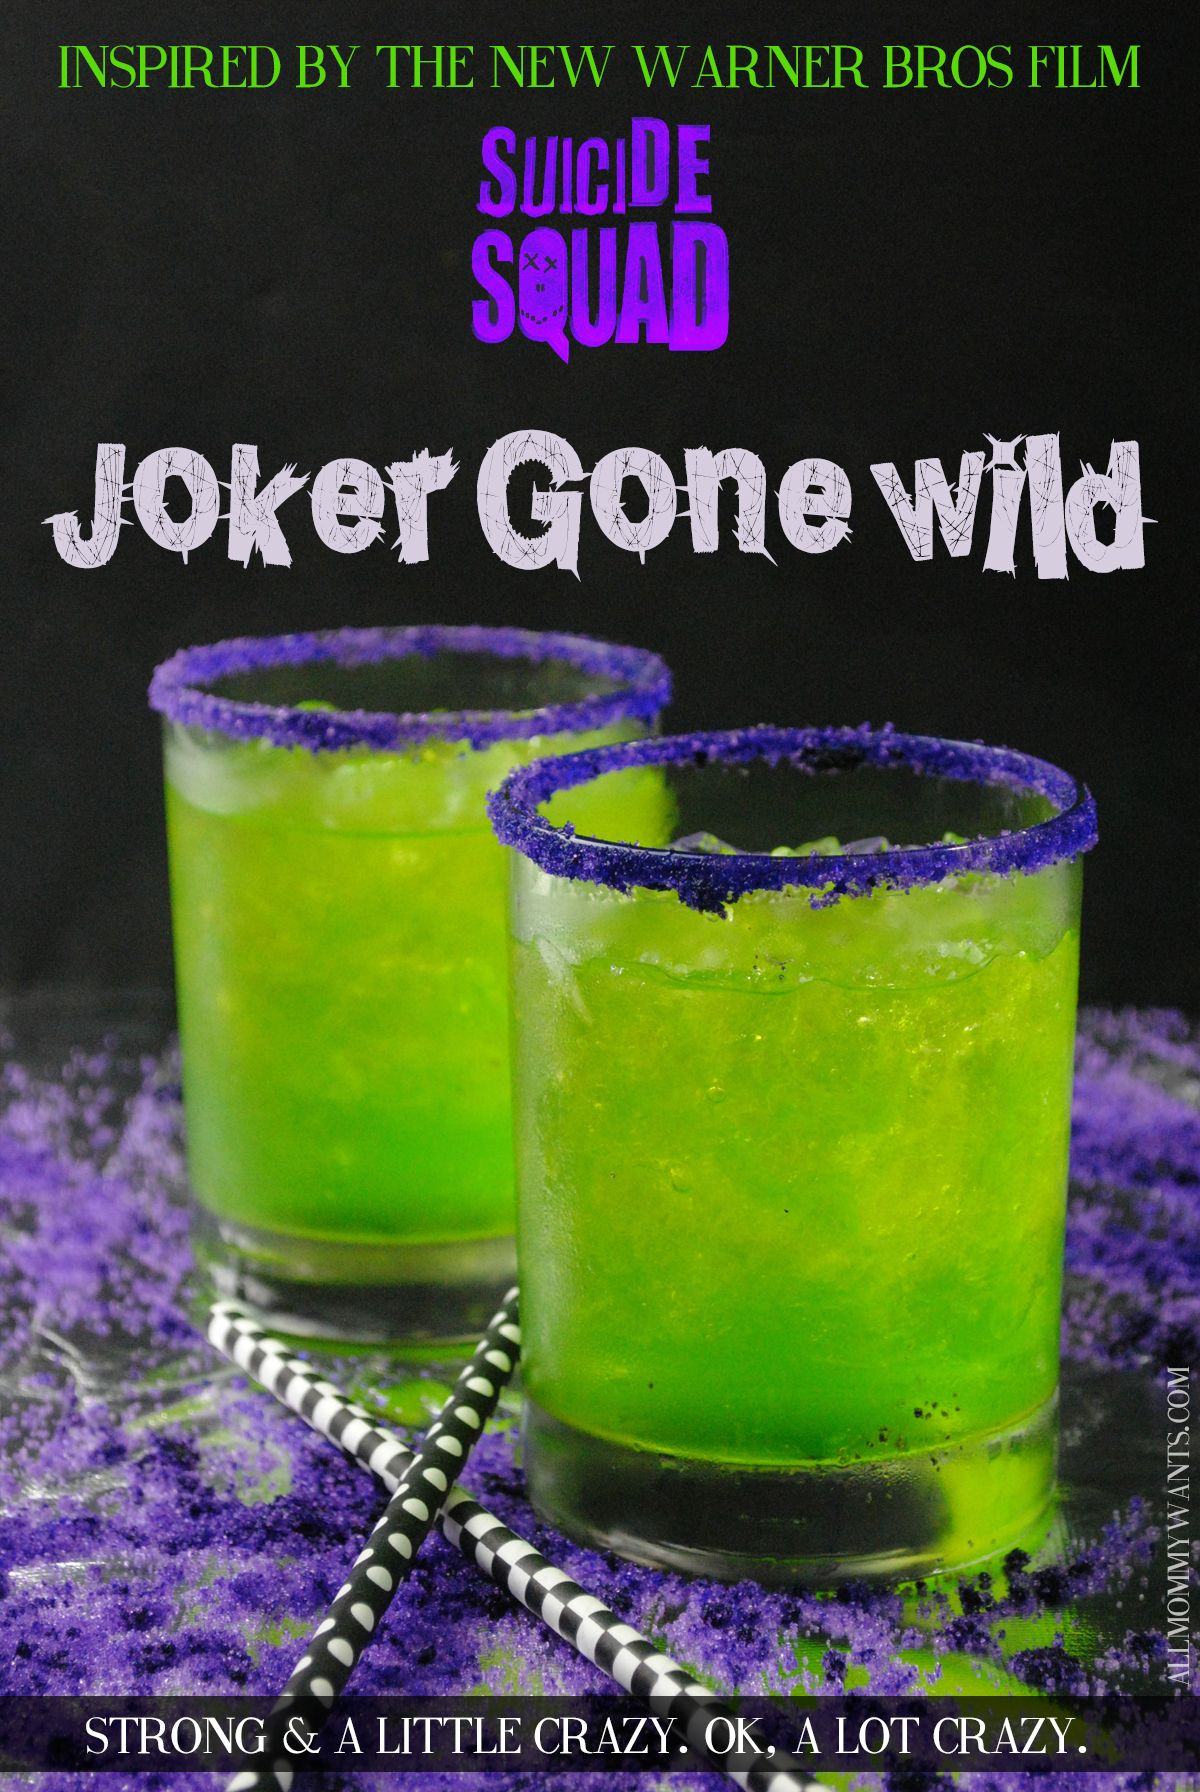 A cocktail inspired by Suicide Squad - The Joker Gone WIld ...